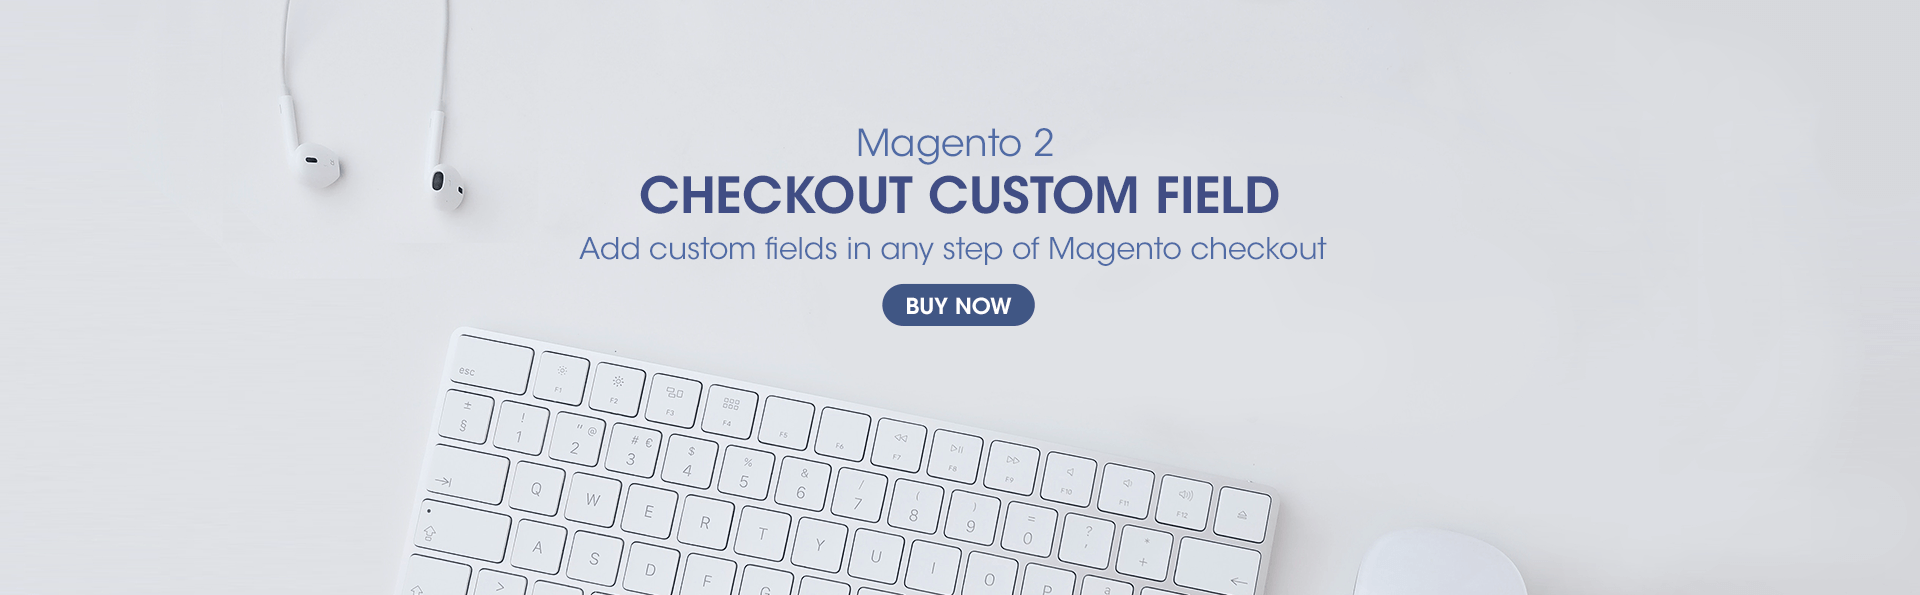 magento 2 checkout custom field